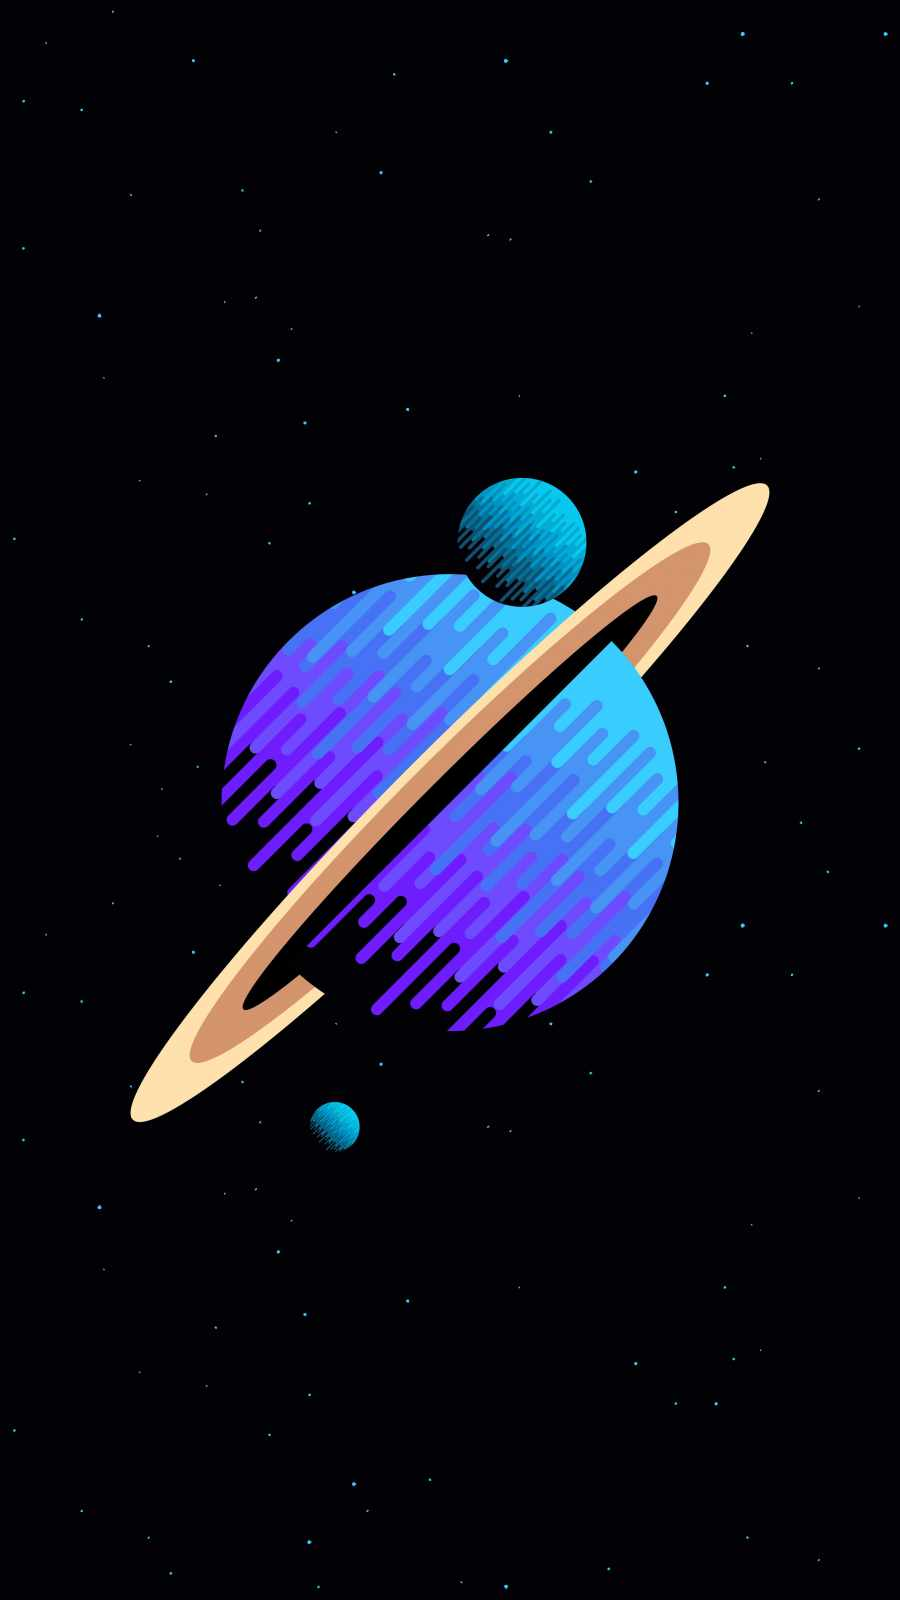 Saturn Planet with Moons